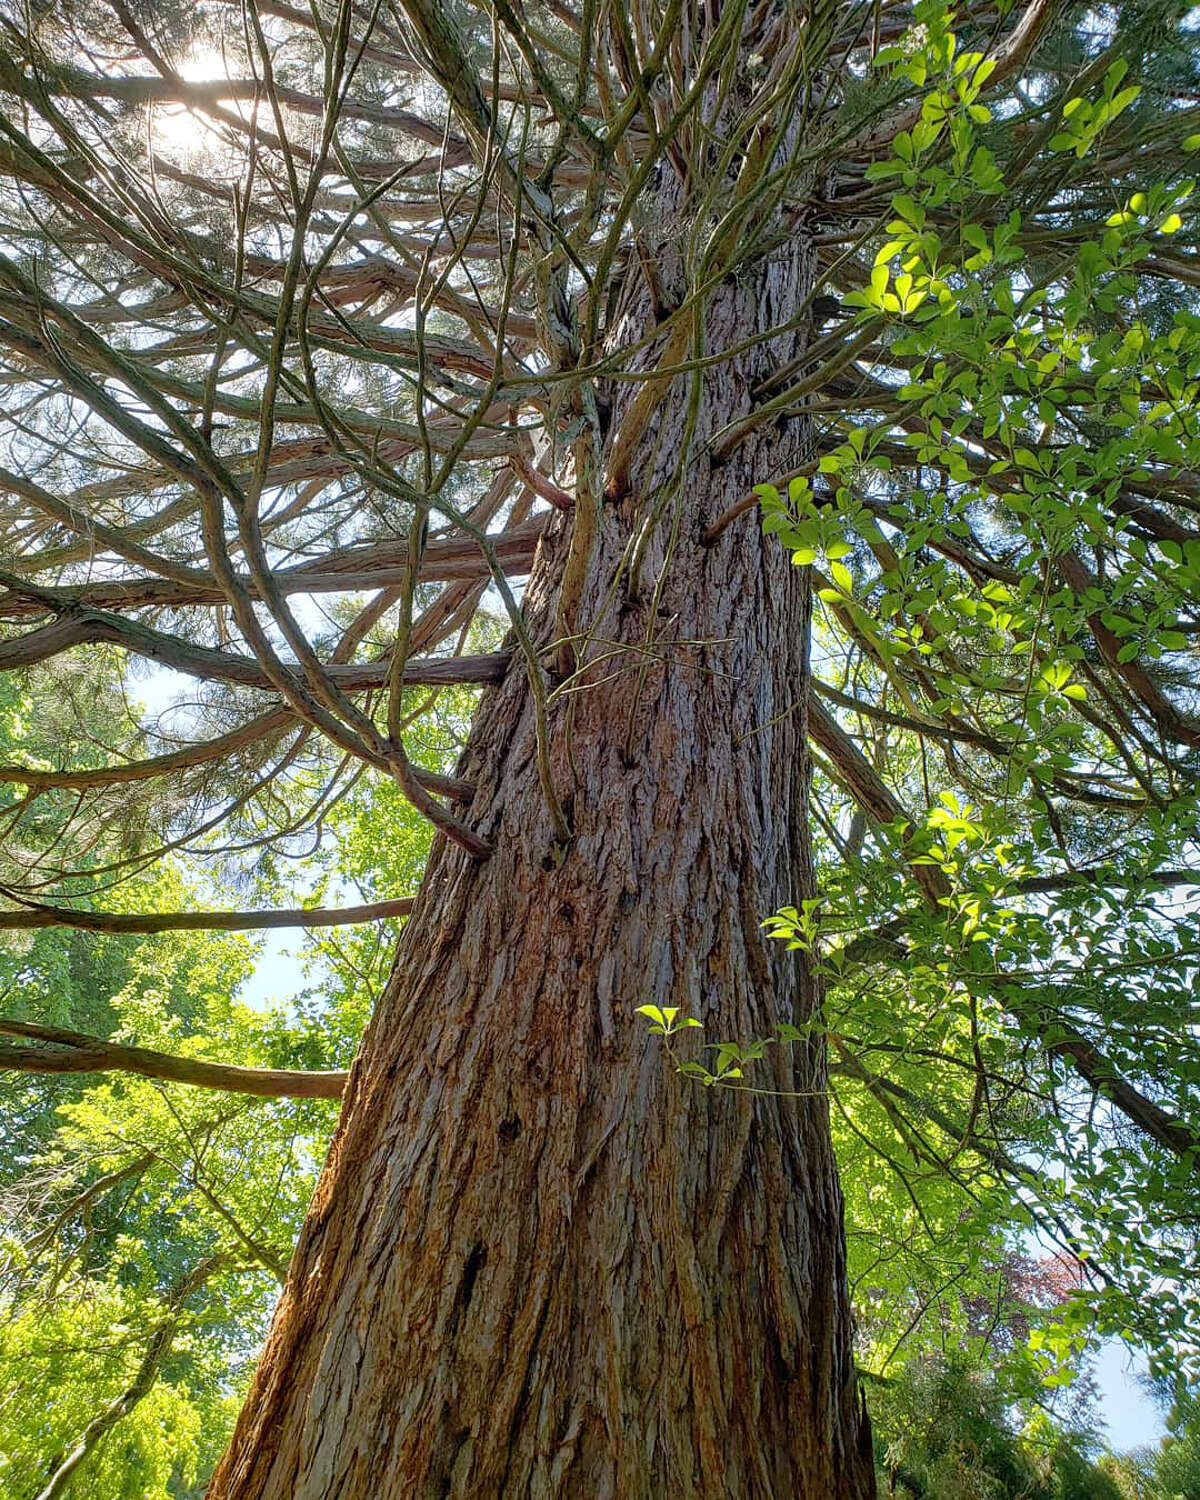 The Lake Bluff Bird Sanctuary's signage about its giant sequoias states that the tree's lower branches die fairly readily from shading but that trees under 100 years old tend to retain those dead branches.